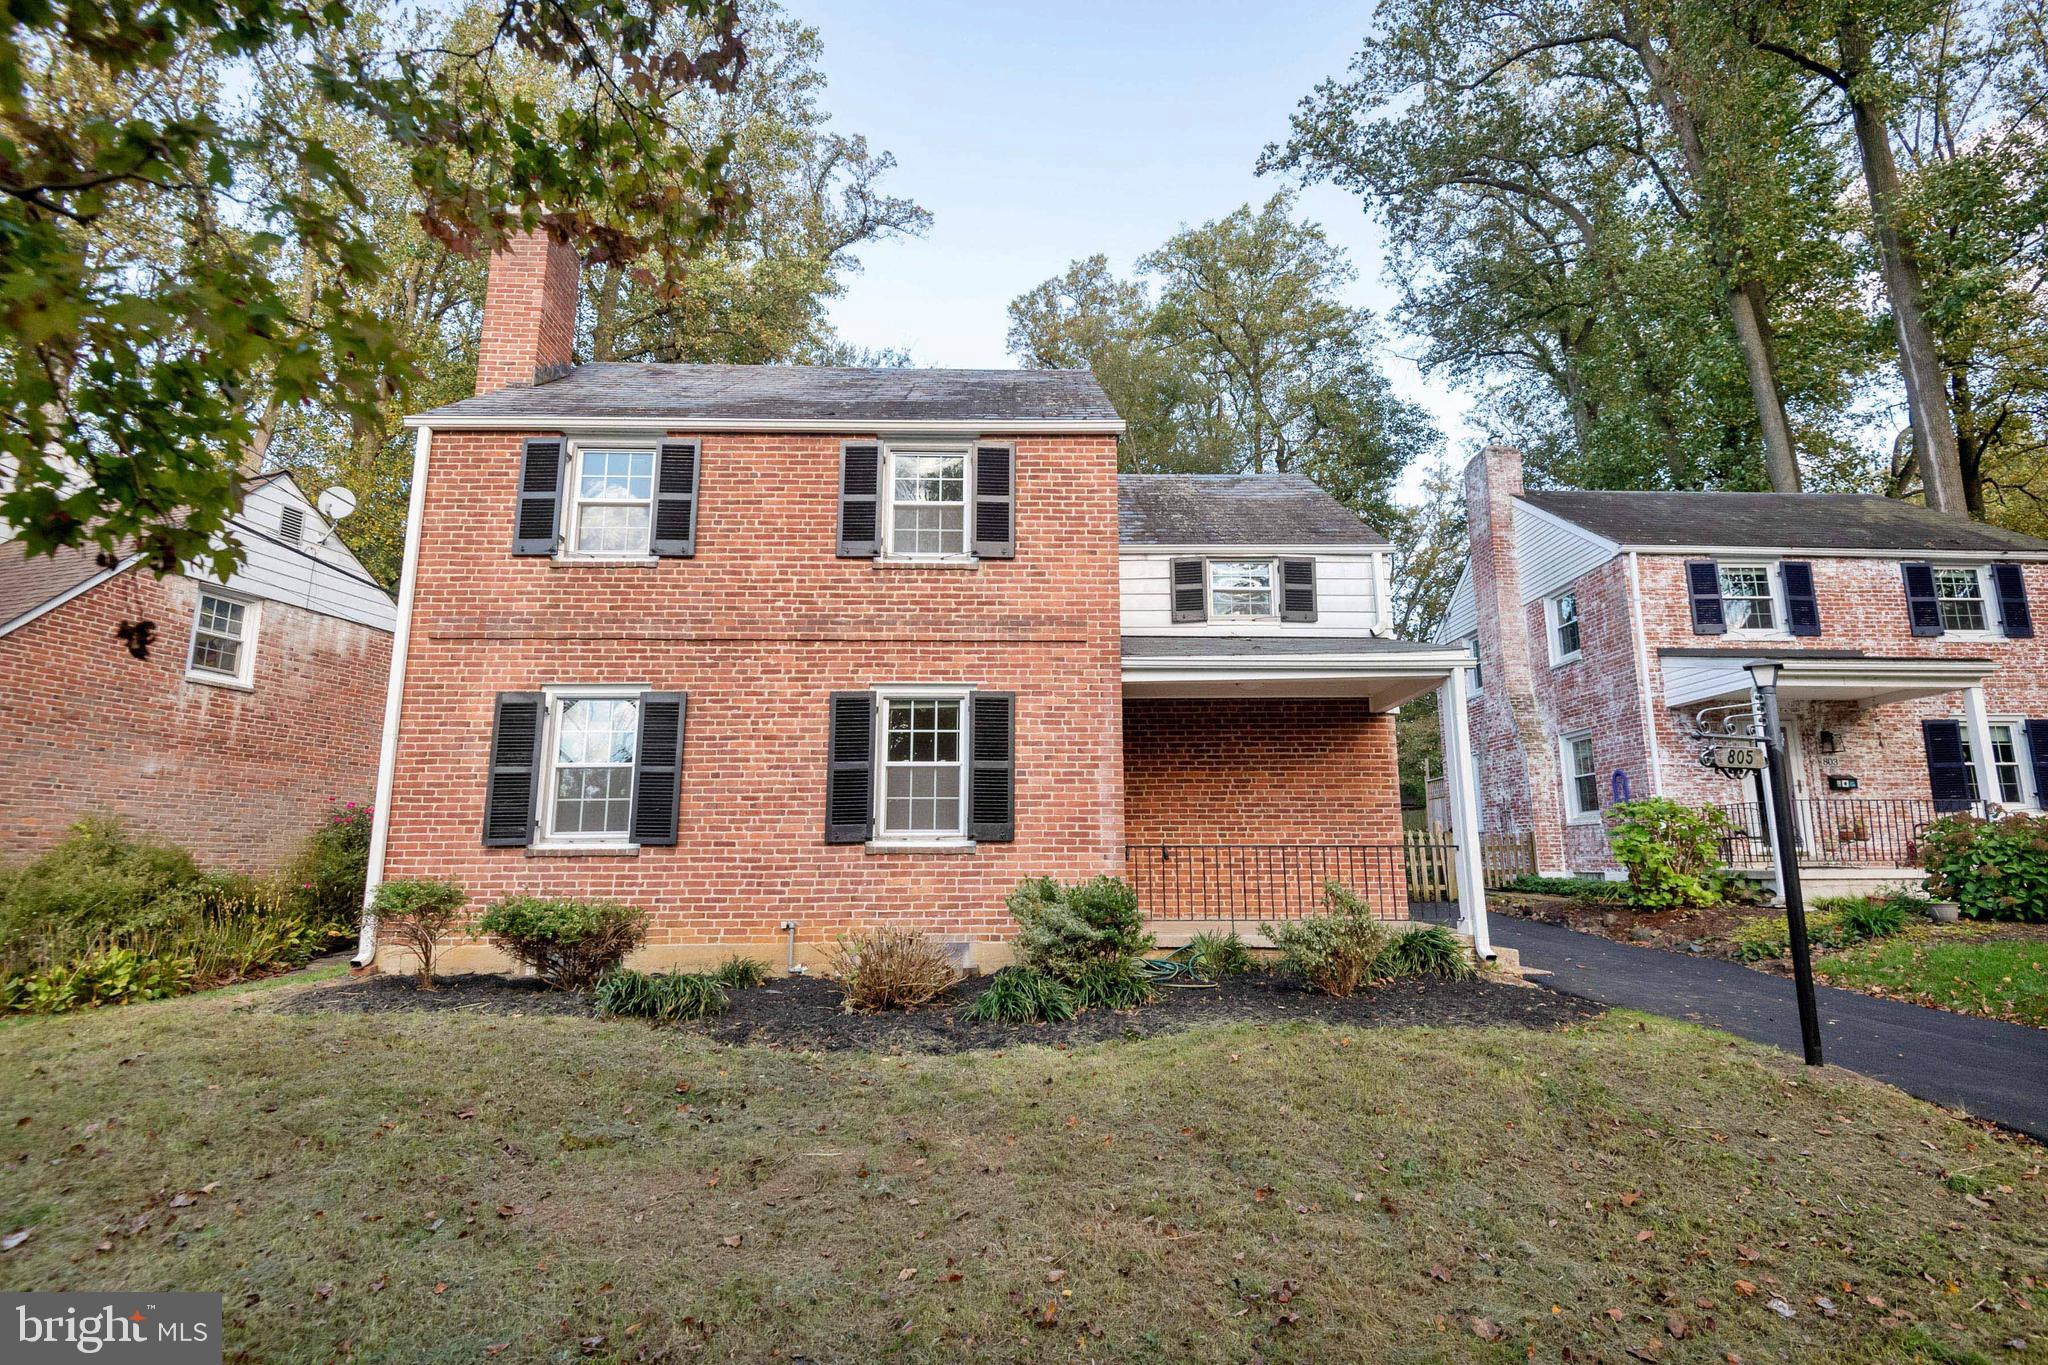 805 Olmstead, Baltimore, MD 21208